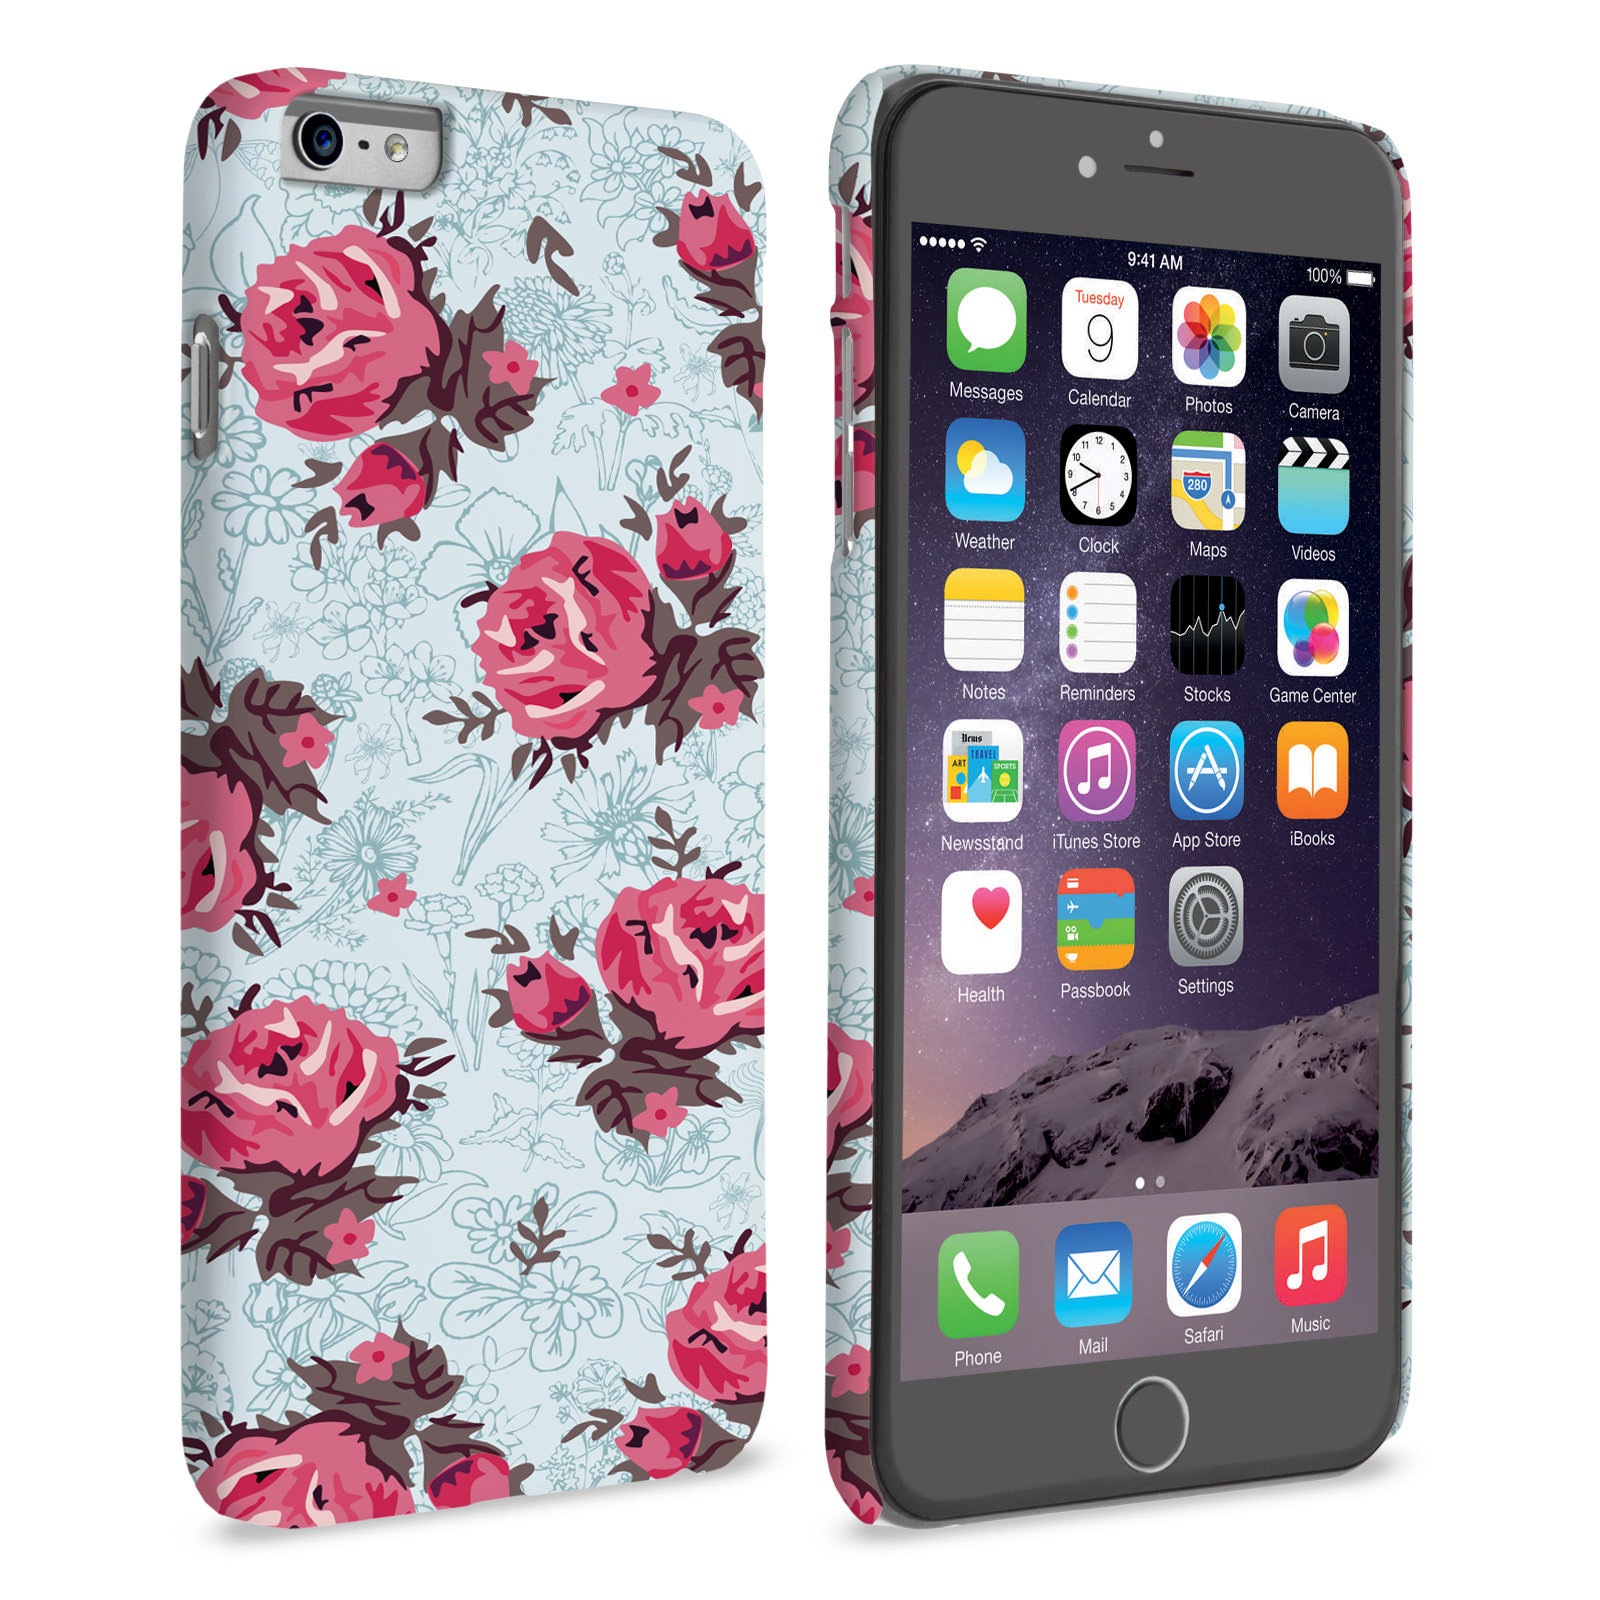 Iphone 6 M Wallpaper: Caseflex IPhone 6 And 6s Plus Vintage Roses Wallpaper H